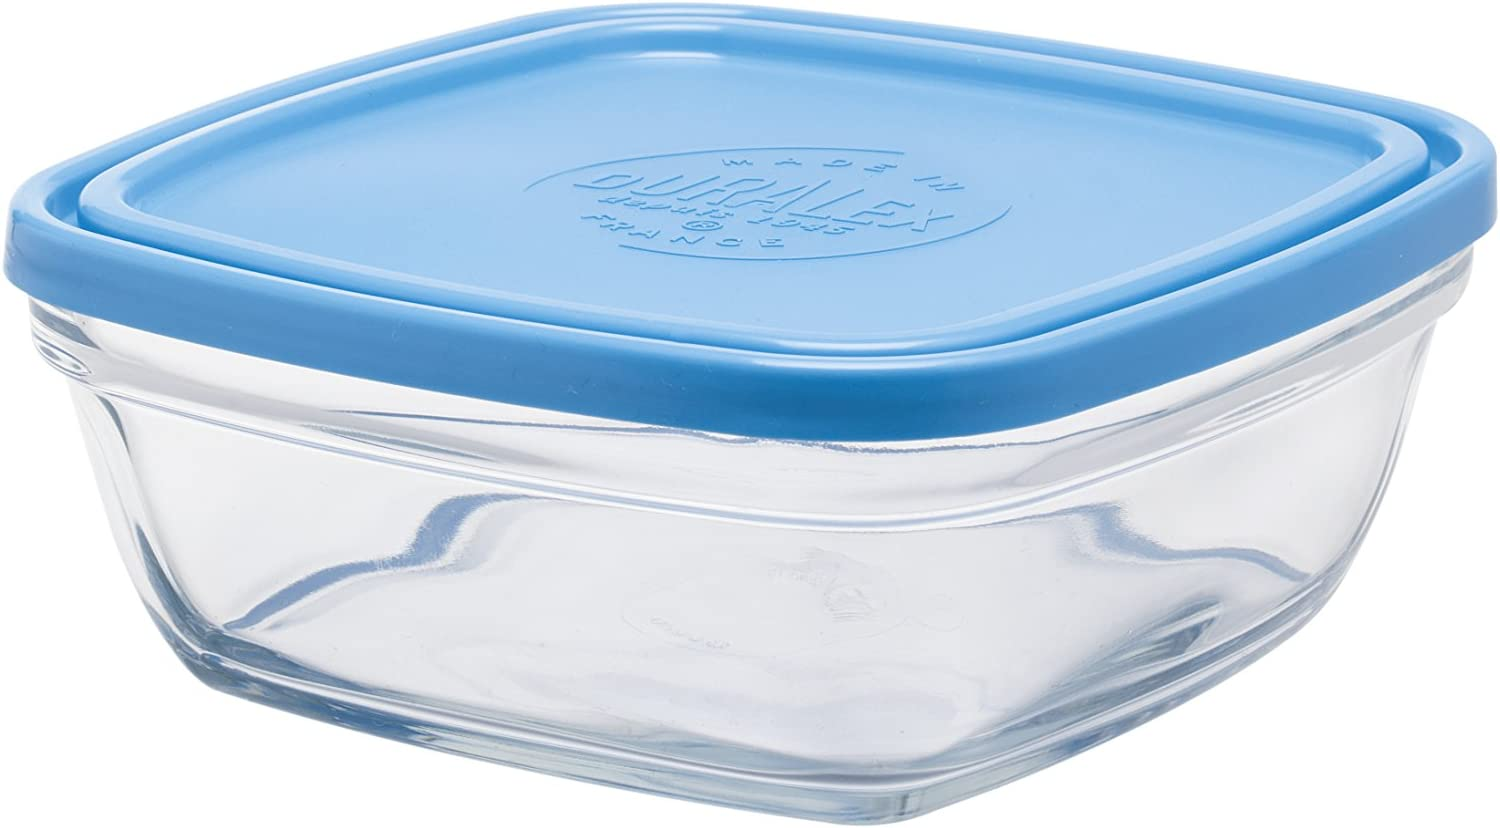 Duralex Made In France Lys Square Bowl with Lid, 40-Ounce